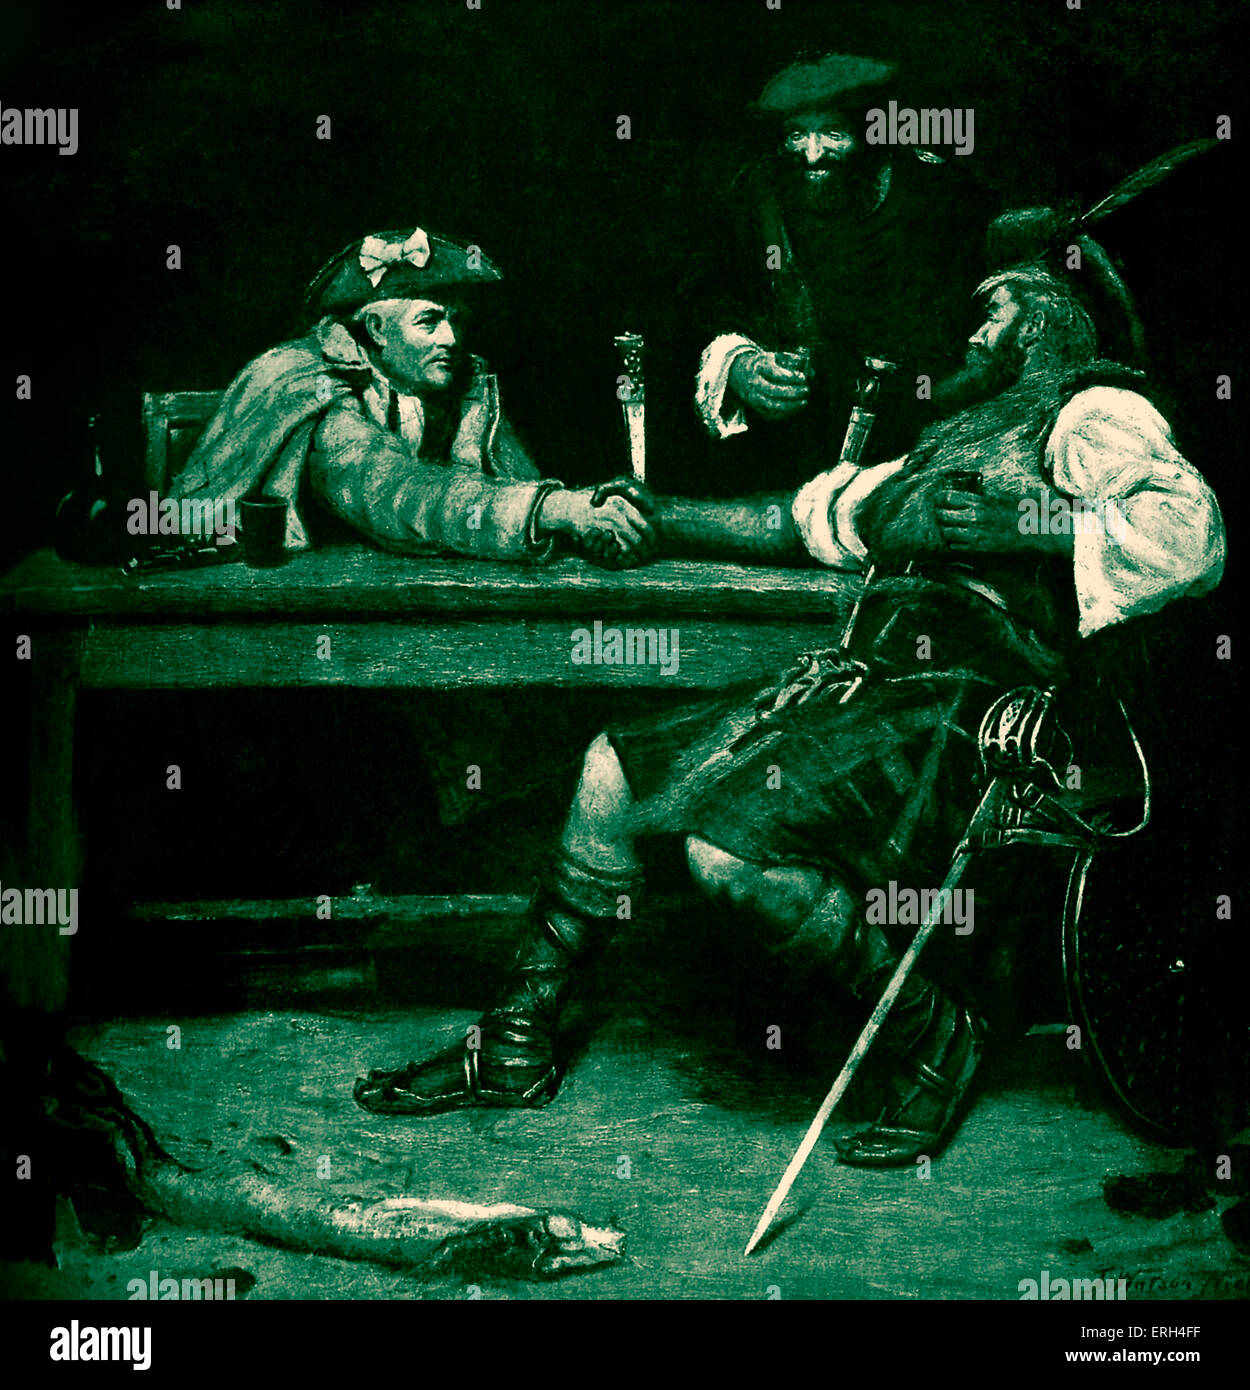 Rob Roy and the Bailie, by John Watson Nicol (1856 - 1926). B/W Reproduction of the painting for the cover of The Bookman 1930. Stock Photo